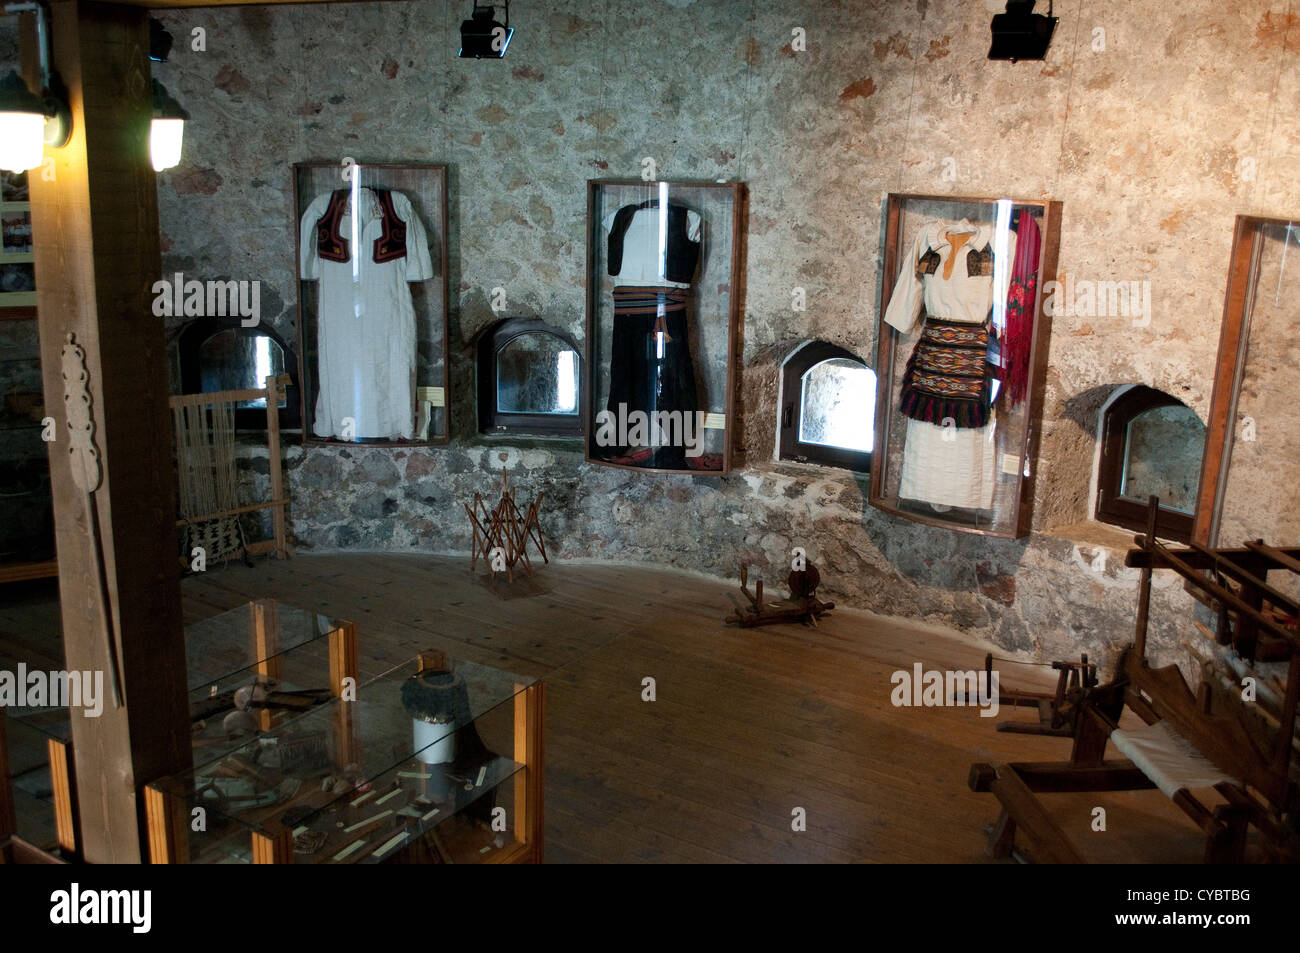 Ethnographic museum in the Medieval fortress, Old Town, Travnik, Bosnia and Herzegovina - Stock Image